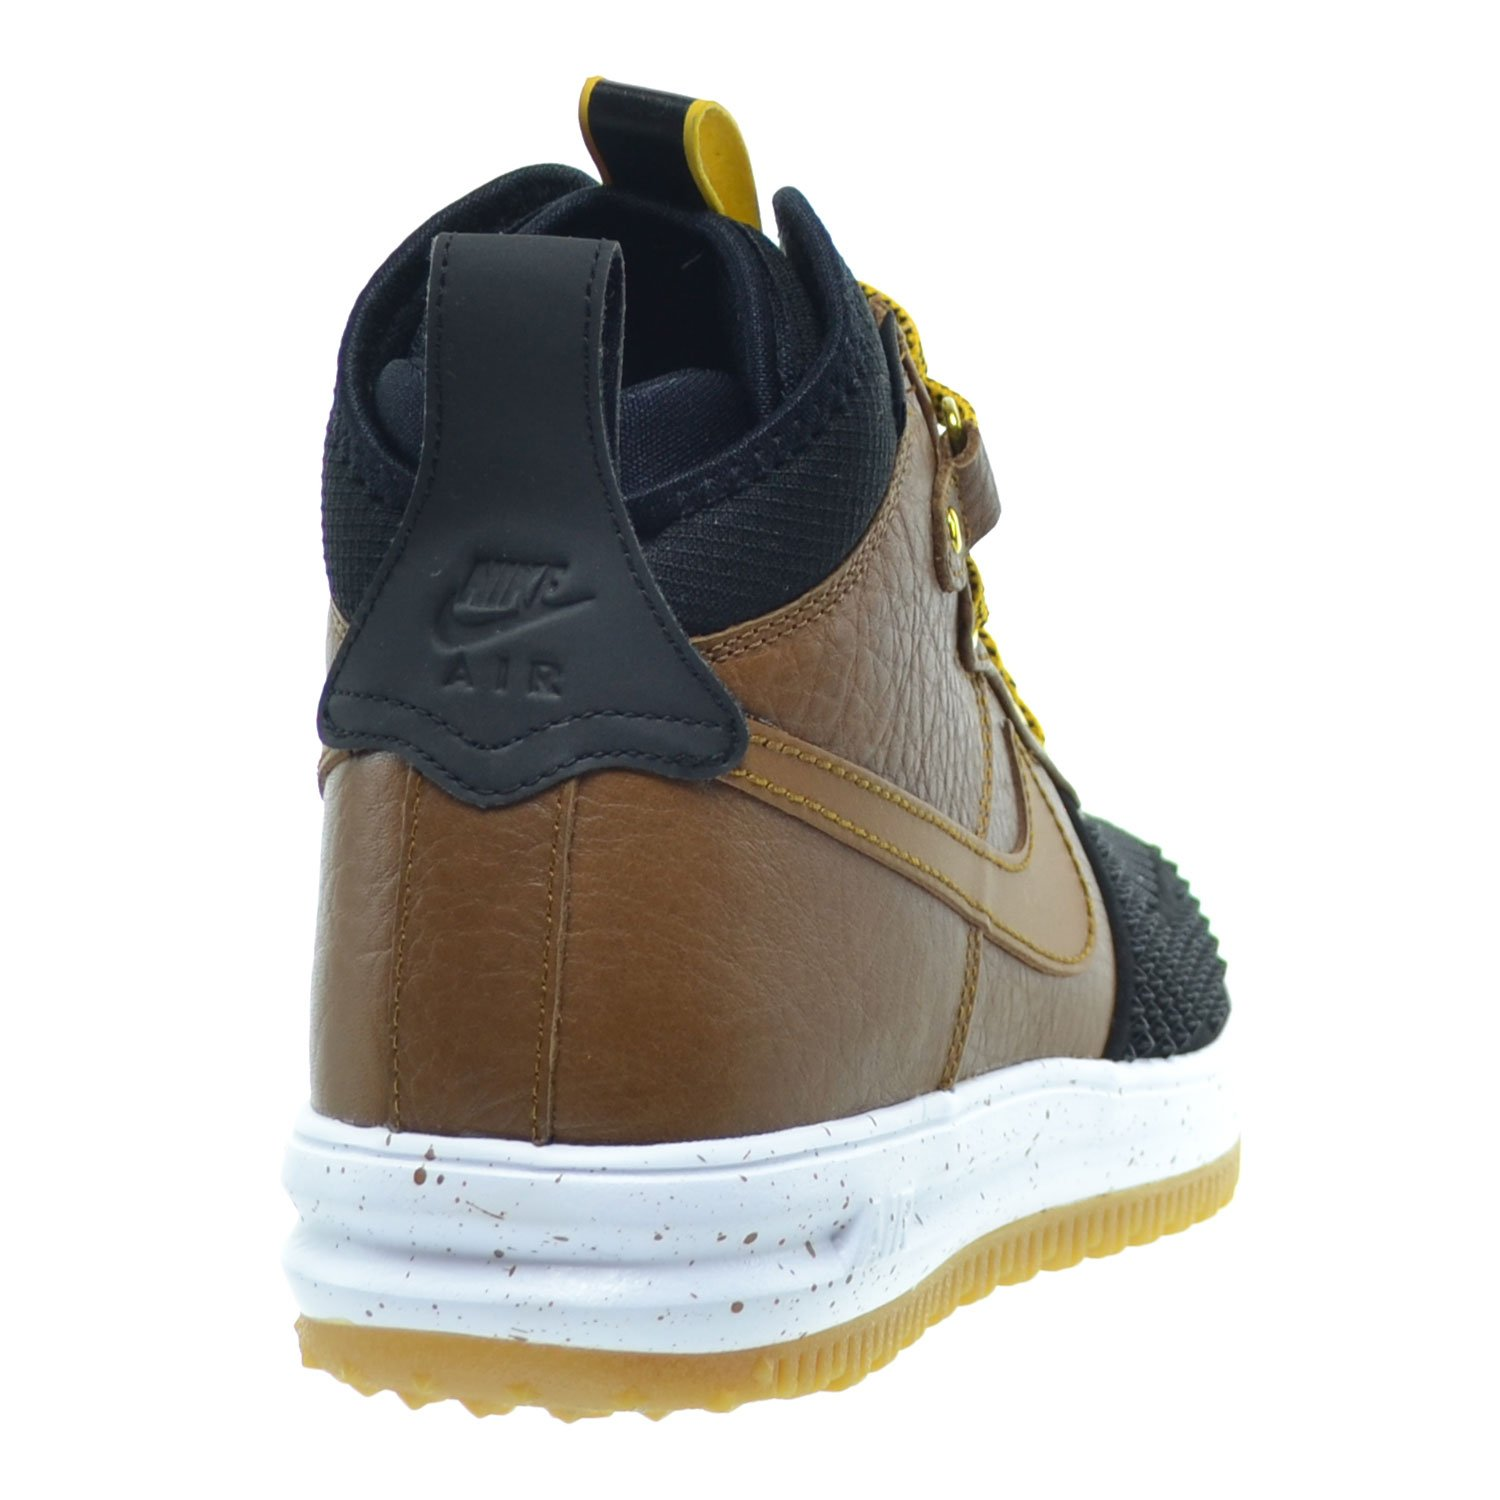 Nike Air Force Tamaño 1 Duckboot 10 RVSjIJQEe